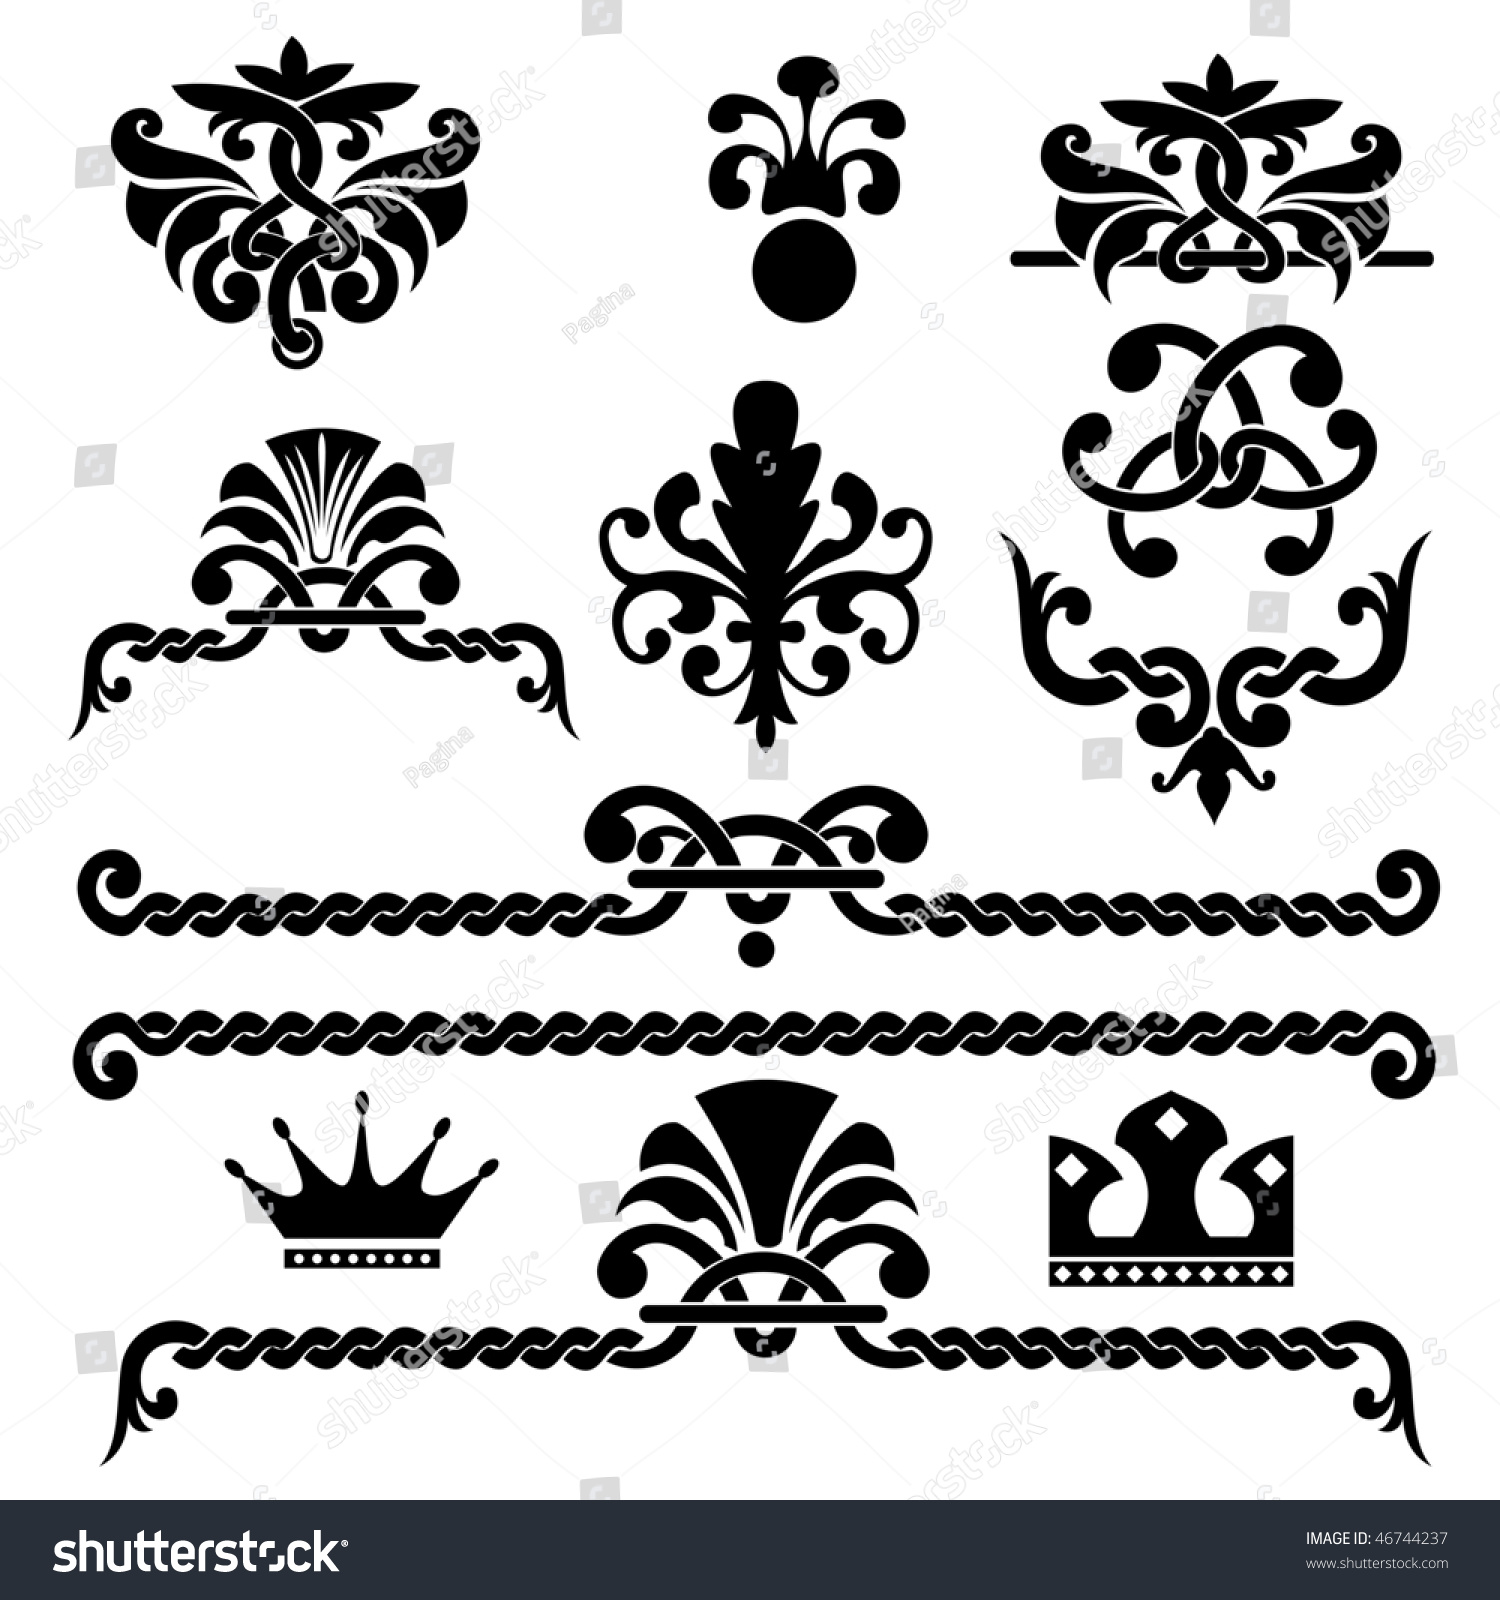 Set of vector gothic design elements 46744237 shutterstock for Gothic design elements